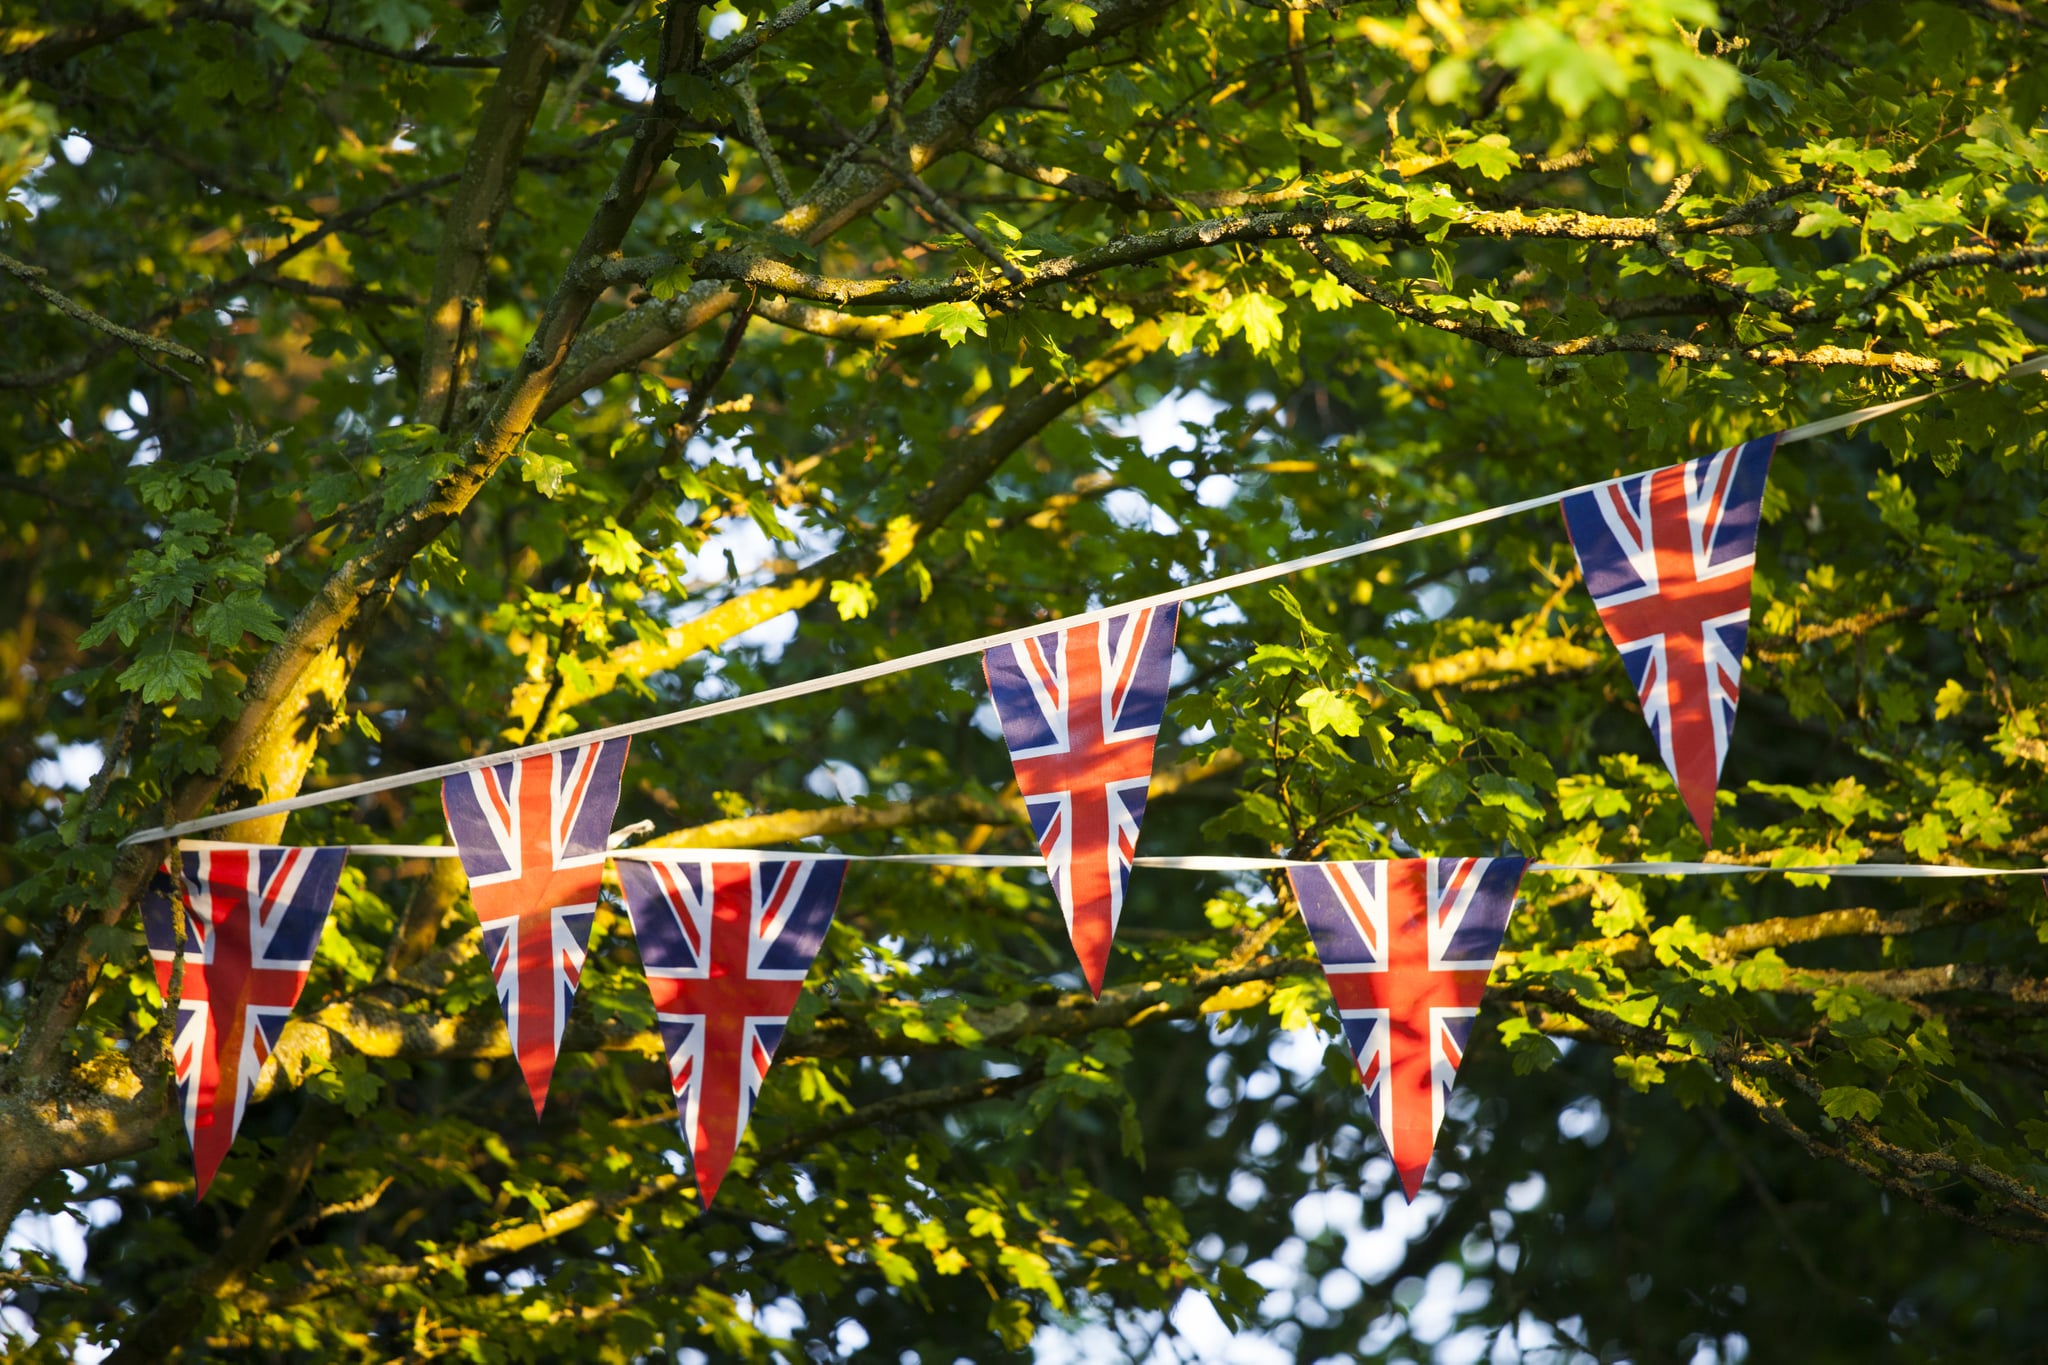 UNITED KINGDOM - JUNE 04:  Union Jack flag bunting at street party to celebrate the Queen's Diamond Jubilee in Swinbrook in the Cotswolds, UK  (Photo by Tim Graham/Getty Images)